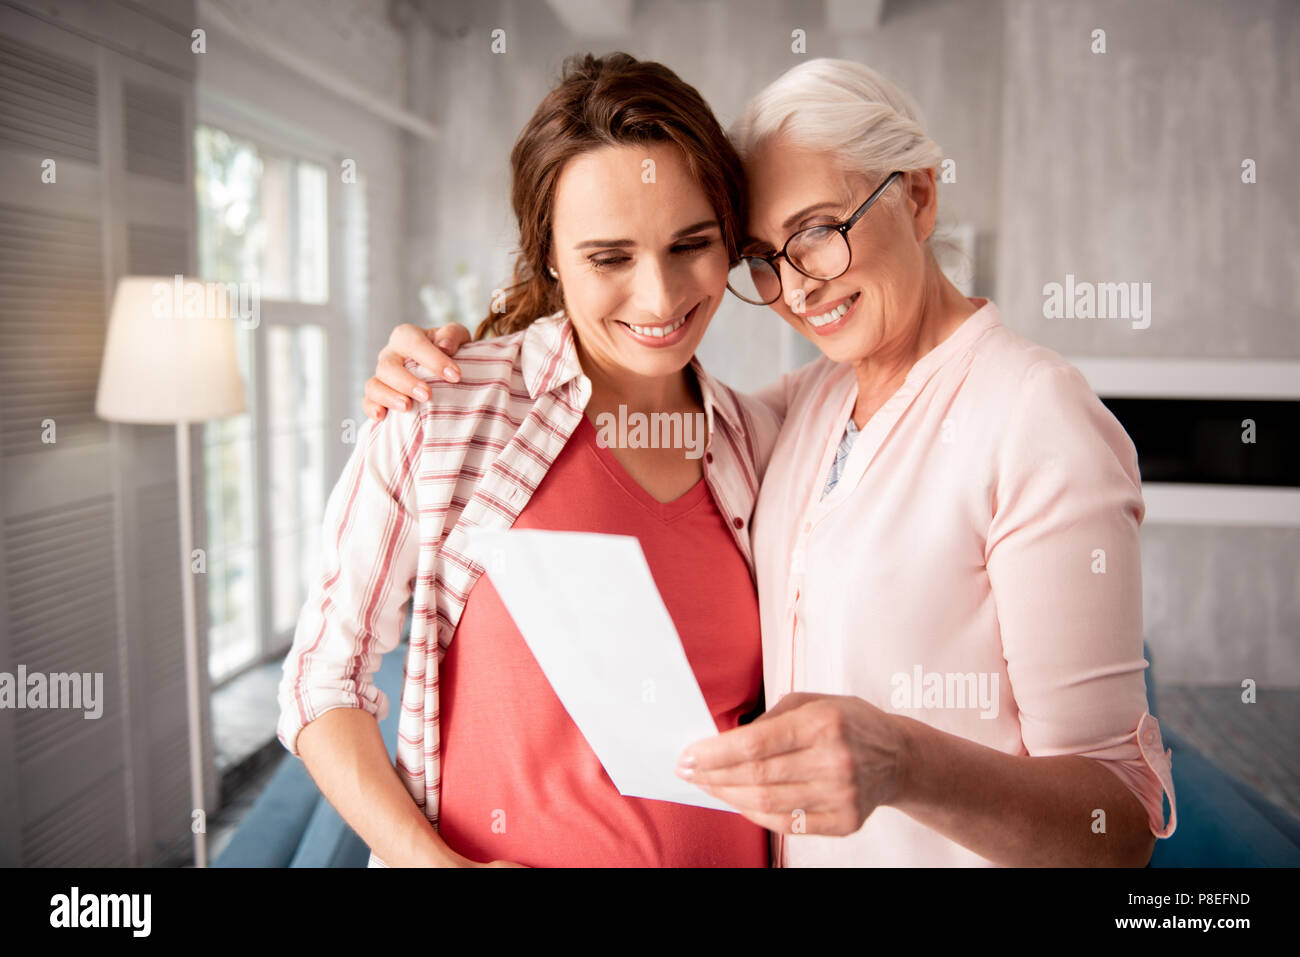 Woman in glasses smiling providing support to her pregnant daughter - Stock Image